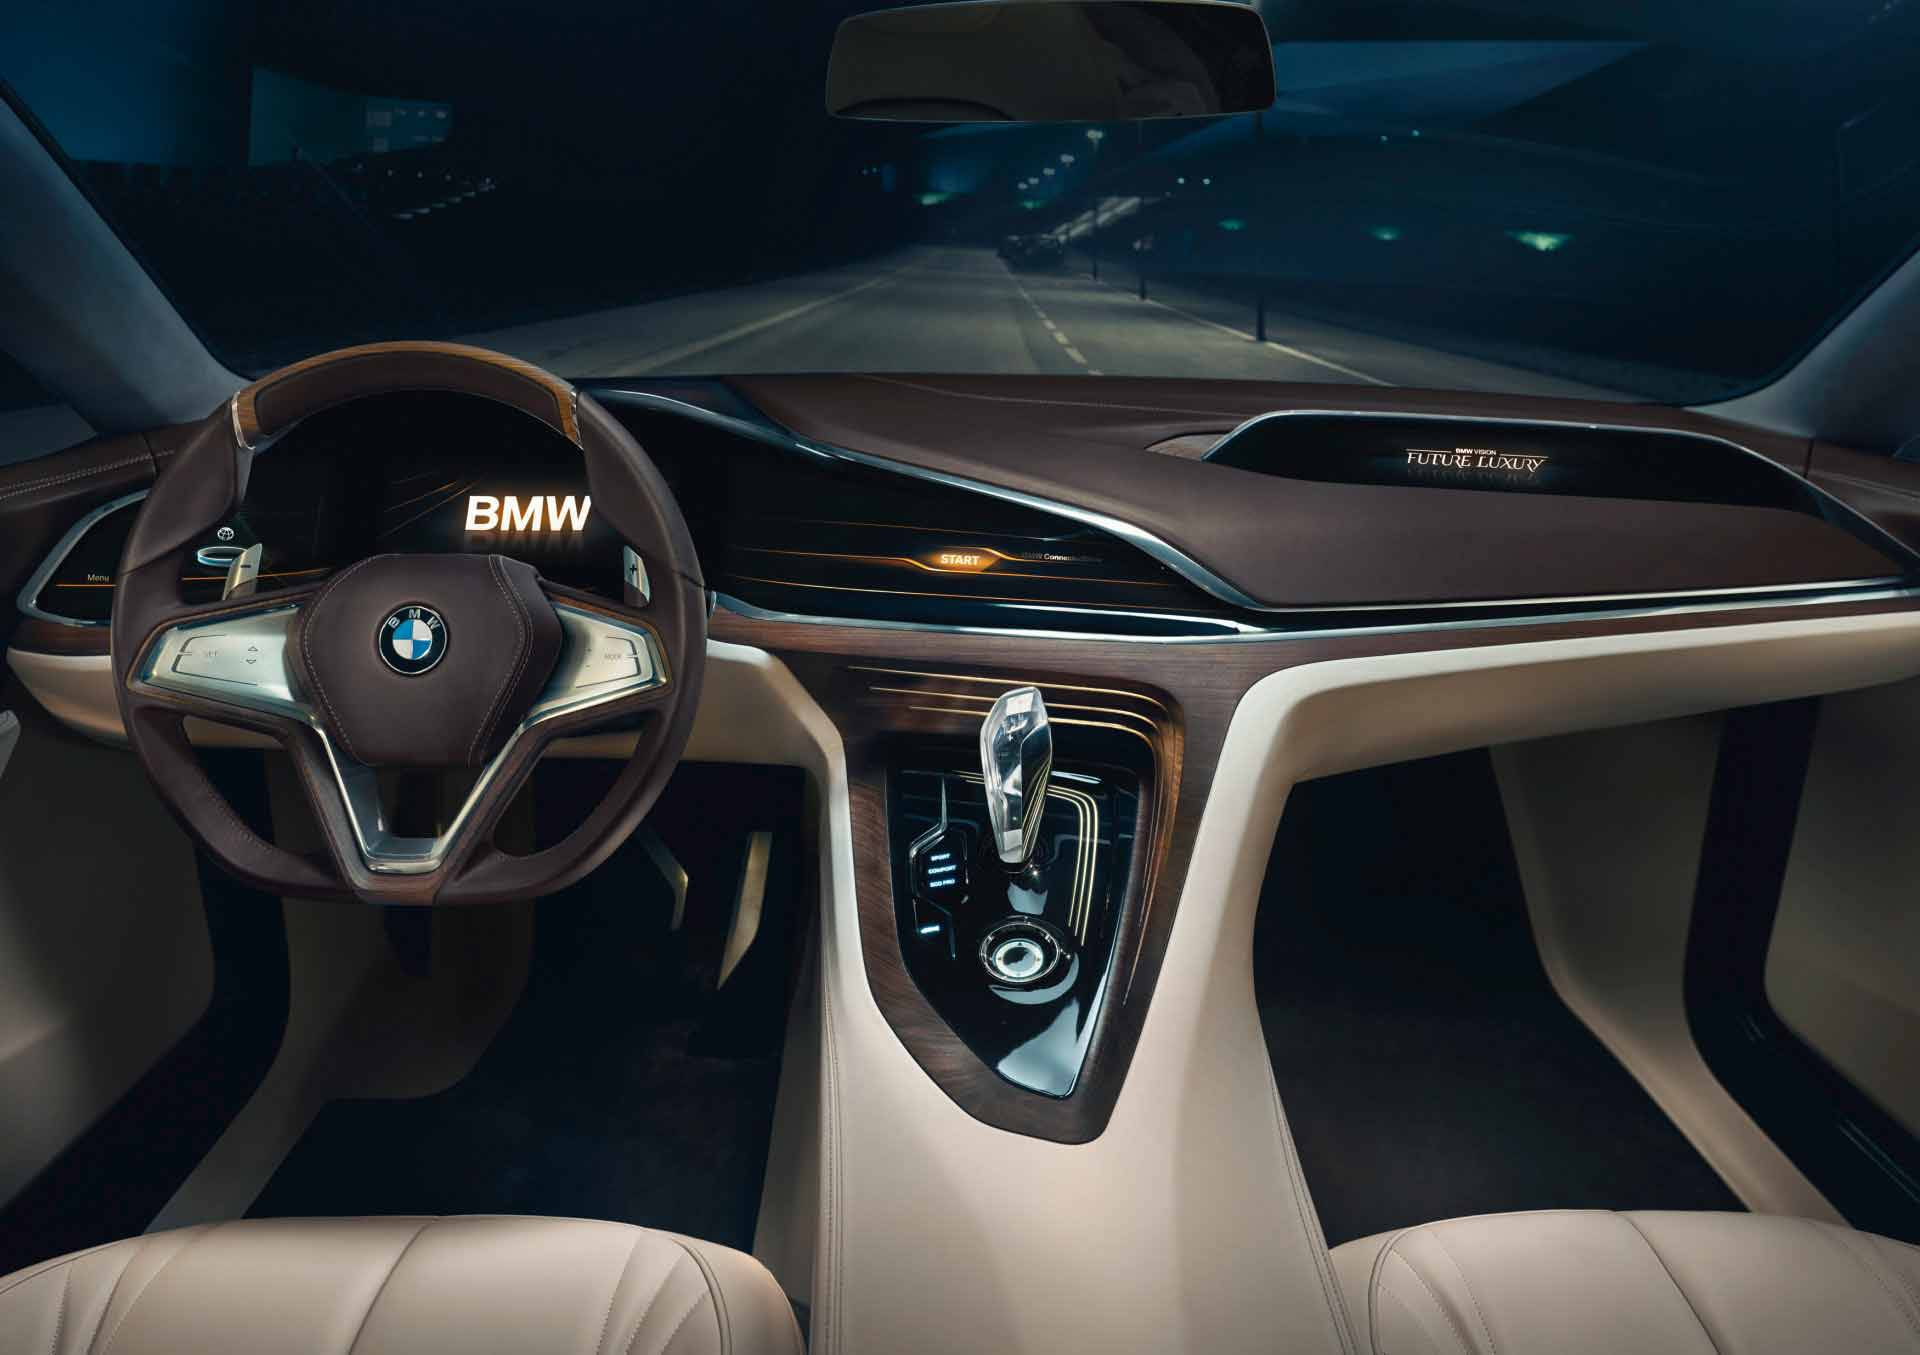 _BMW-Vision-Future-Luxury-auf-der-Auto-China-2014-innen4